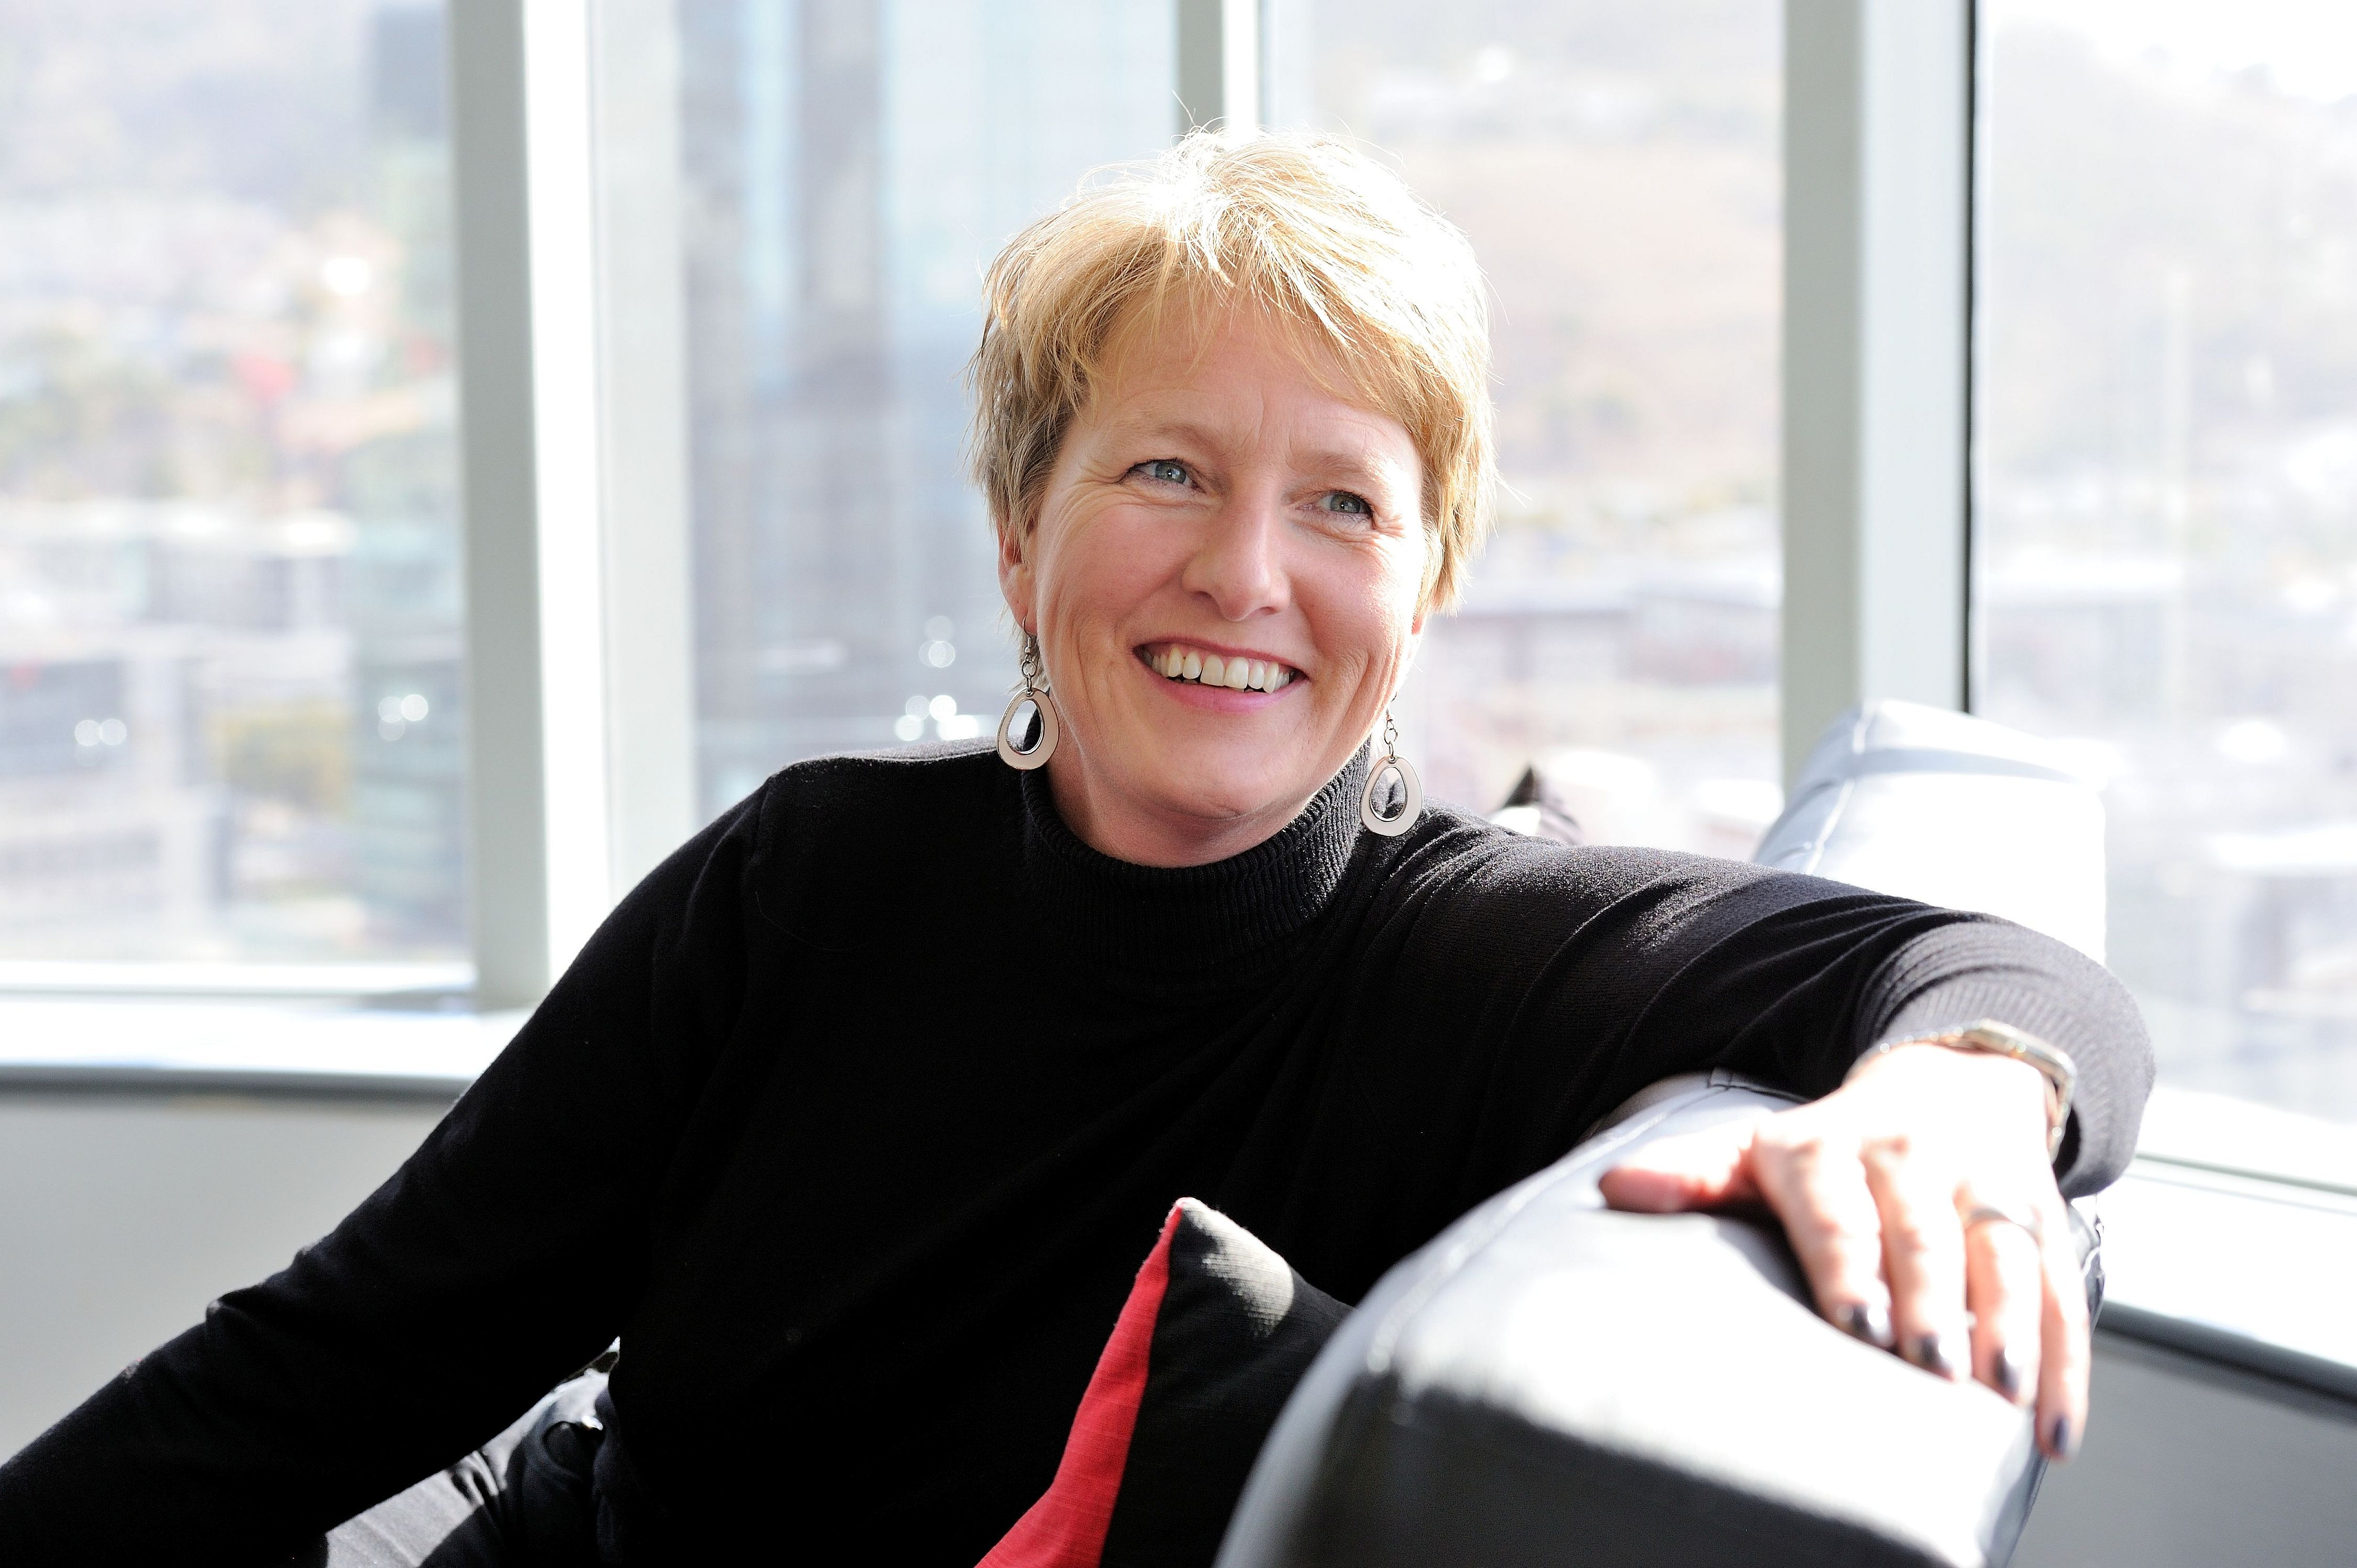 Judi Sandrock, Co-Founder and Joint CEO of Meedo